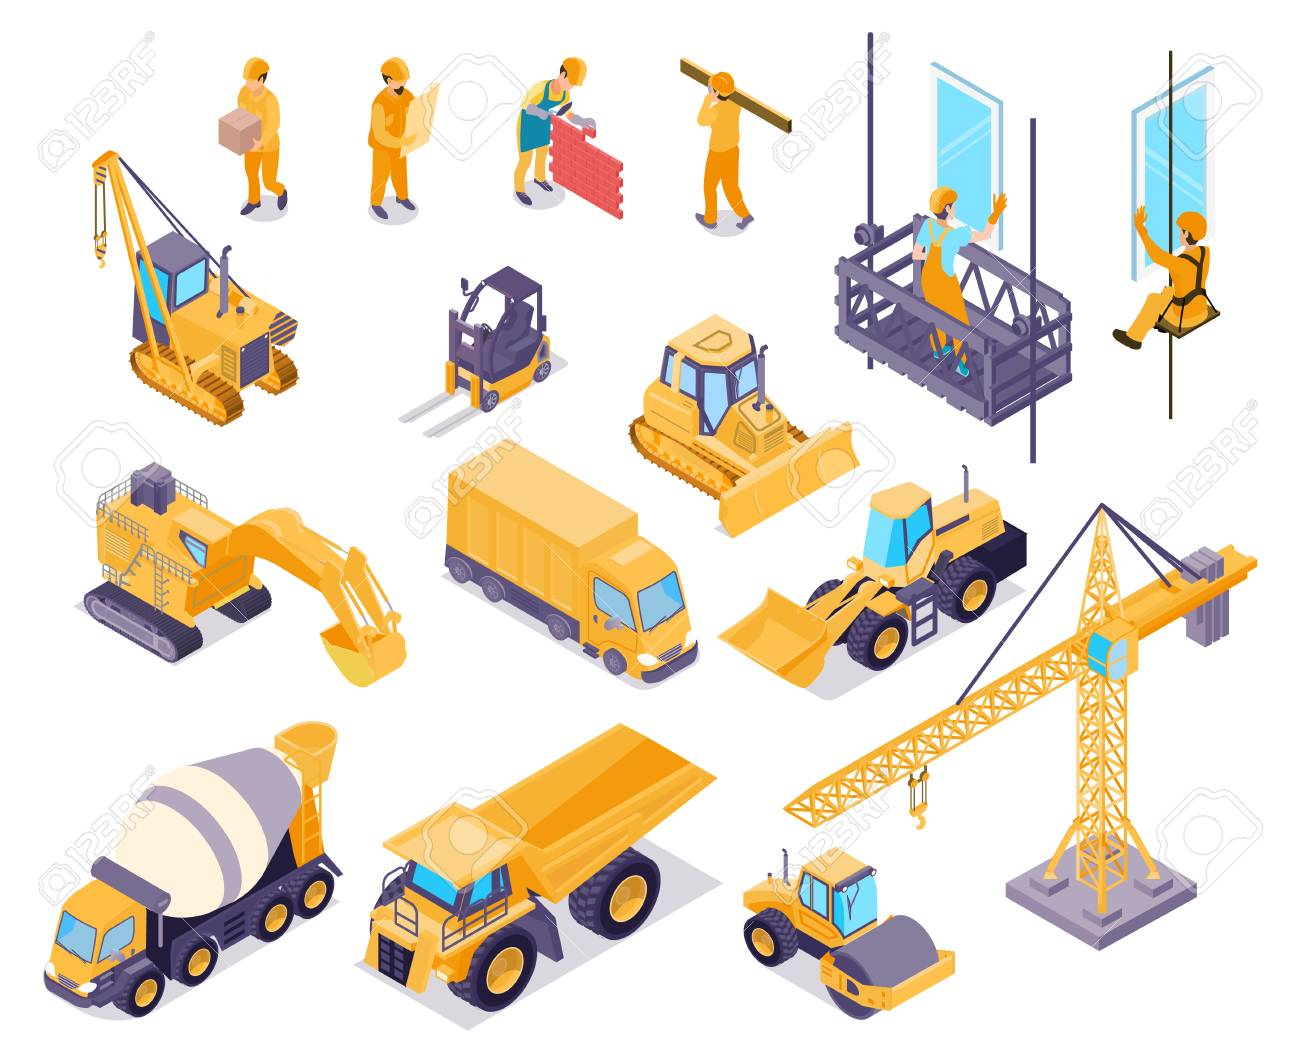 Construction isometric icons set with workers and various equipment for house building isolated on white background 3d vector illustration - 110151389